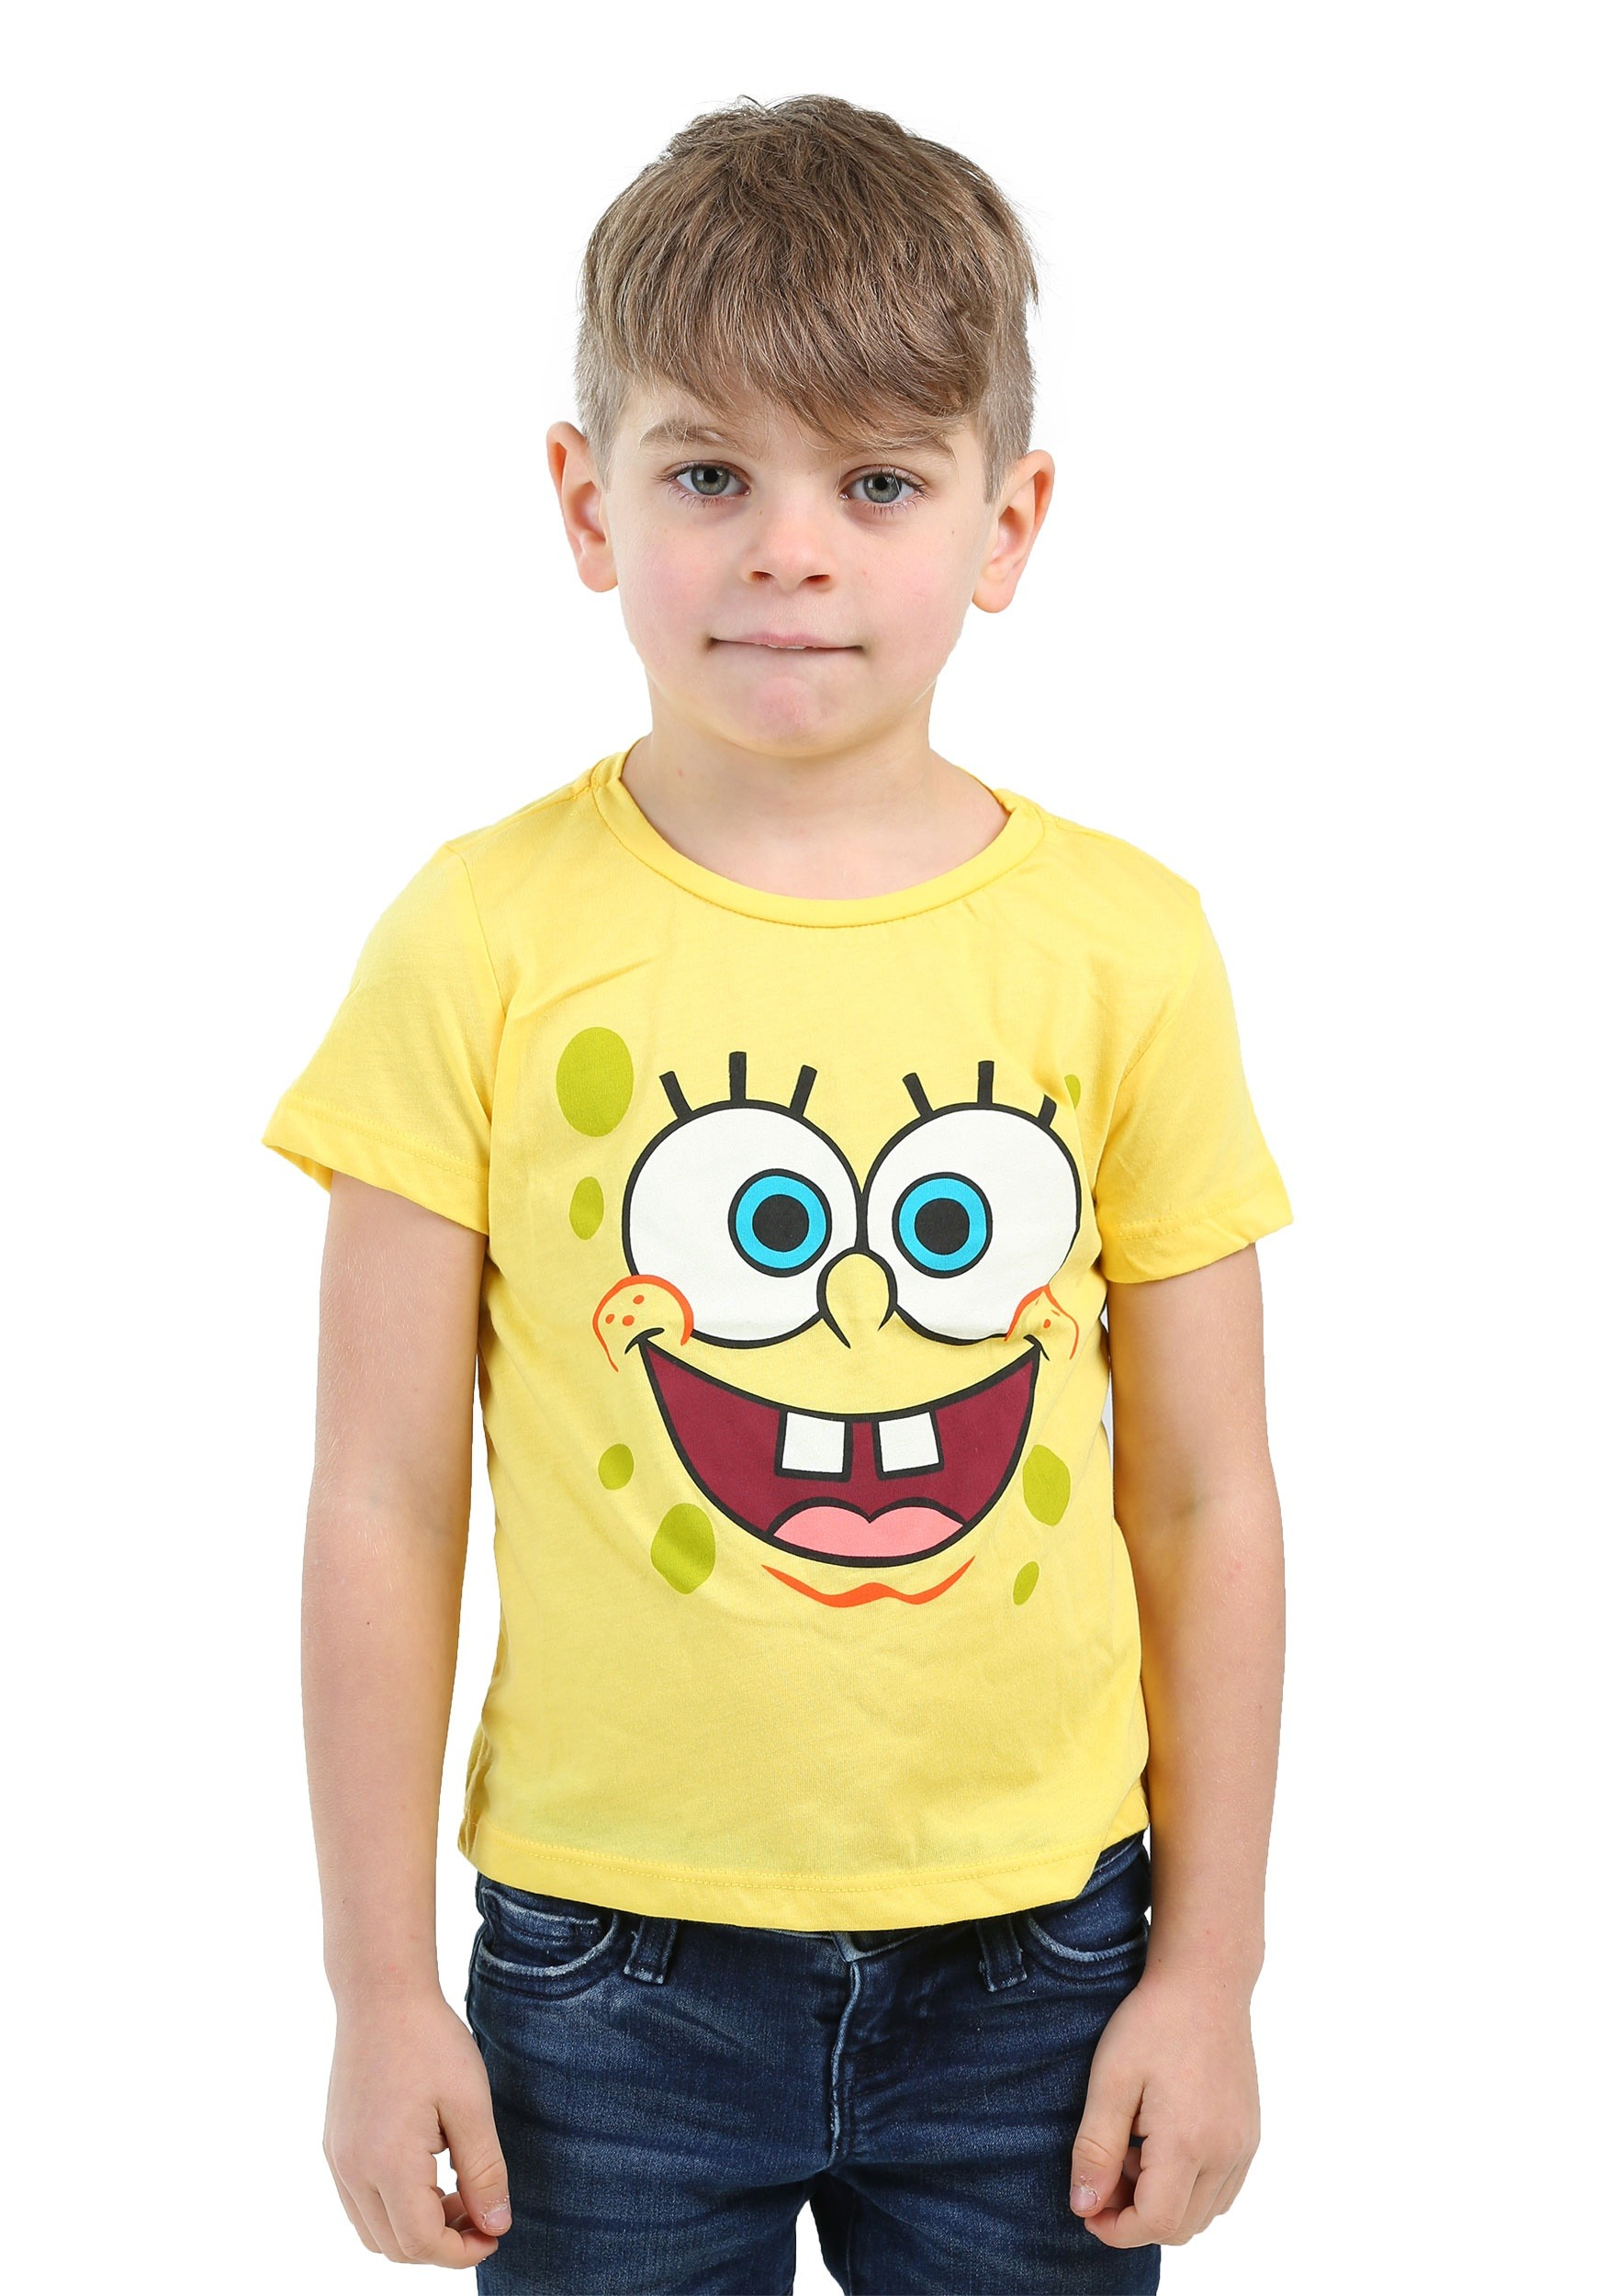 Kids Spongebob Squarepants Face Costume Shirt